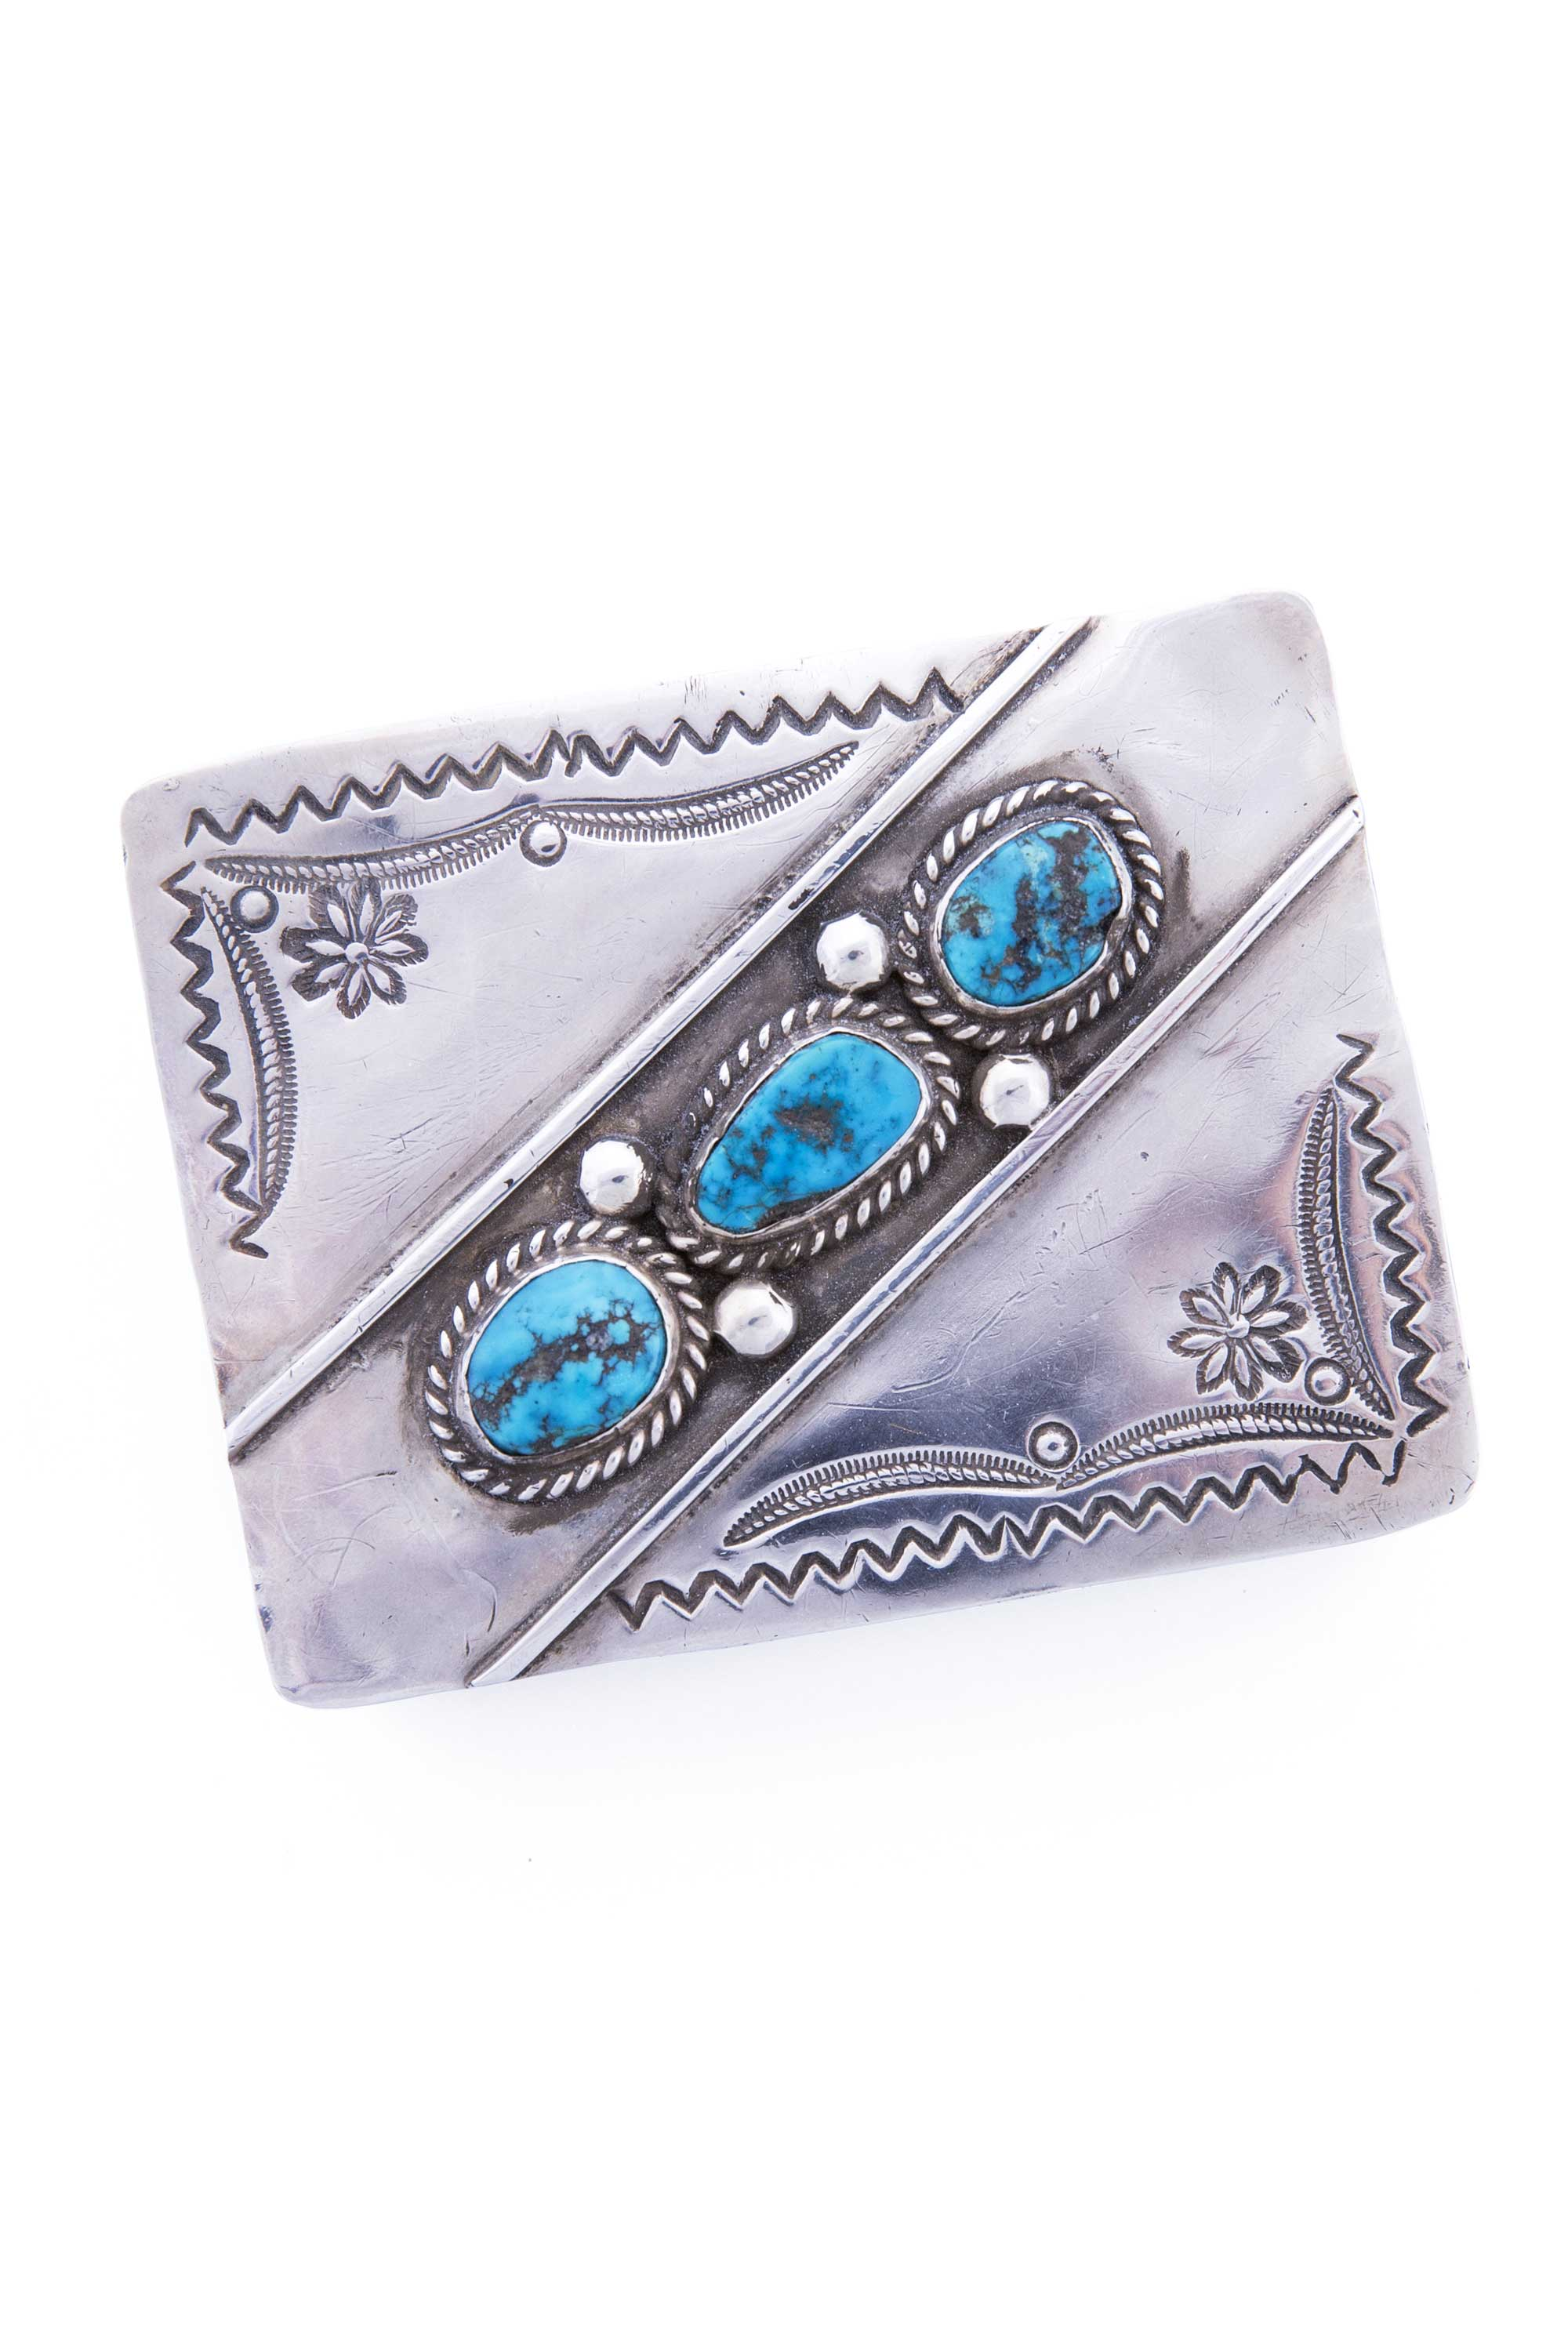 Miscellaneous Box, Sterling, Silver & Turquoise, Vintage